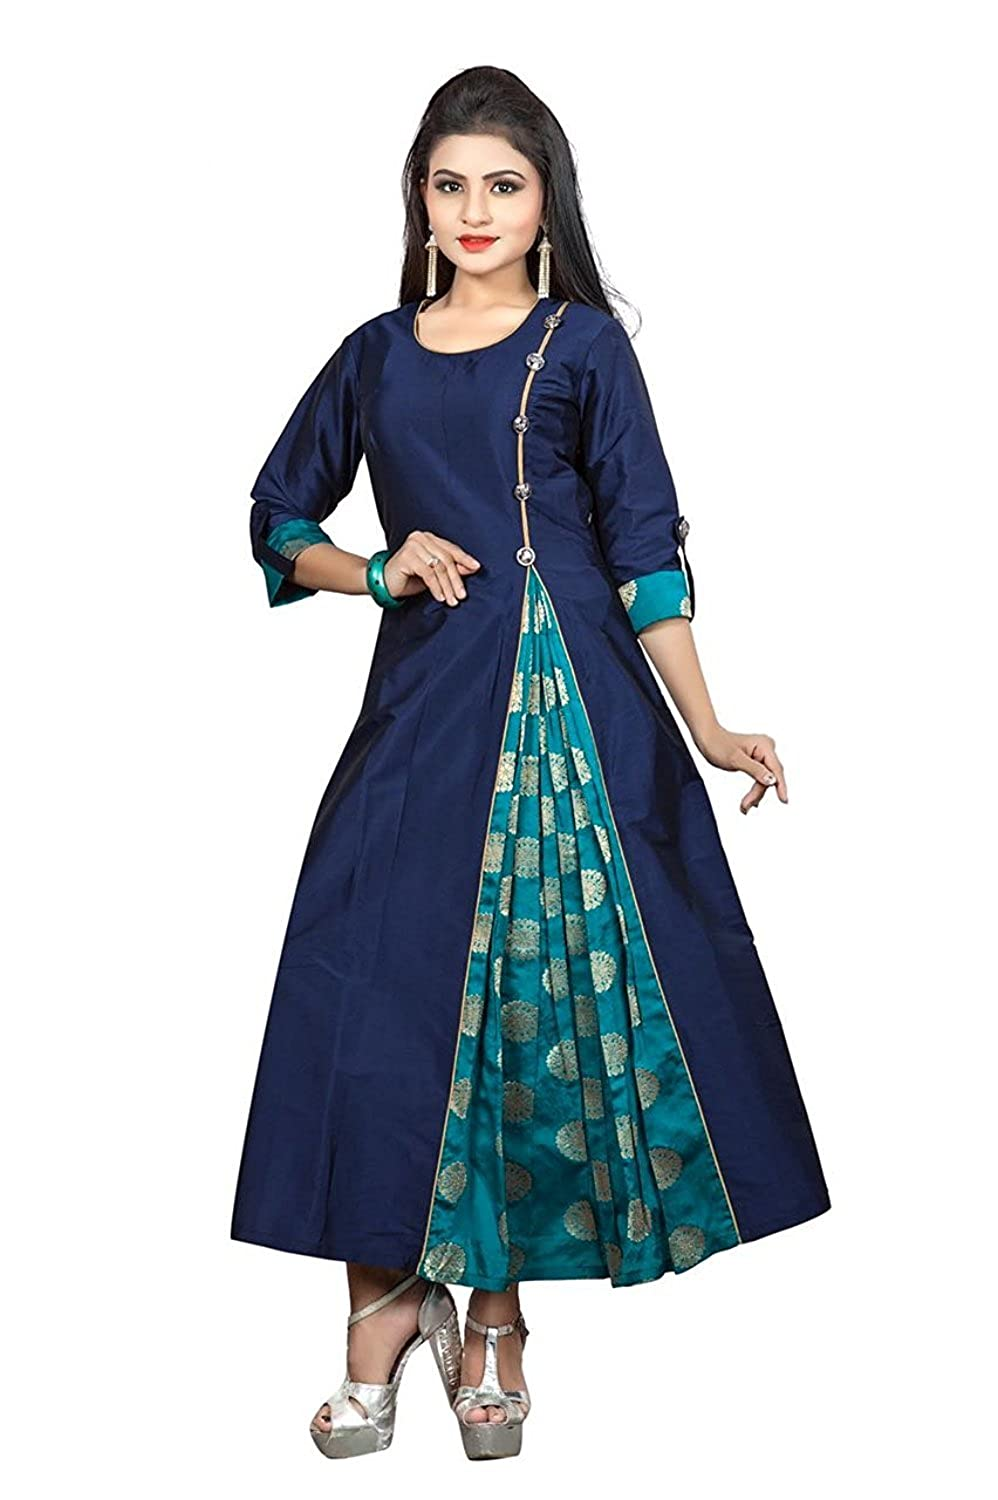 Buy Maahi Girls Blue Silk Ceremony Attractive Unique One Piece Designer Western Dresses Size L At Amazon In